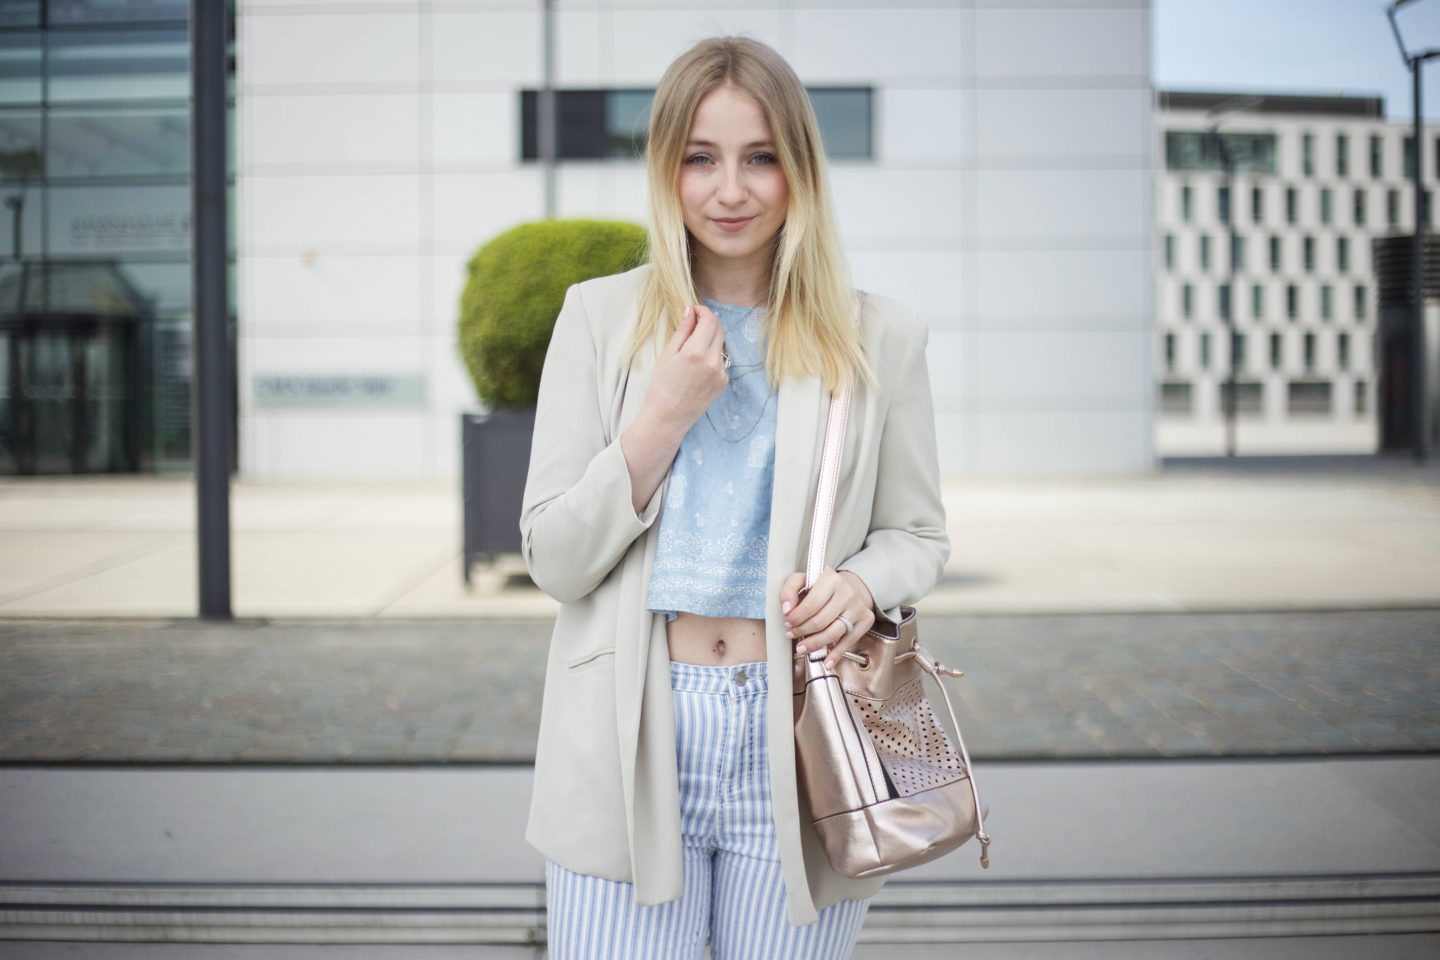 Striped Jeans und helle Farben Outfit